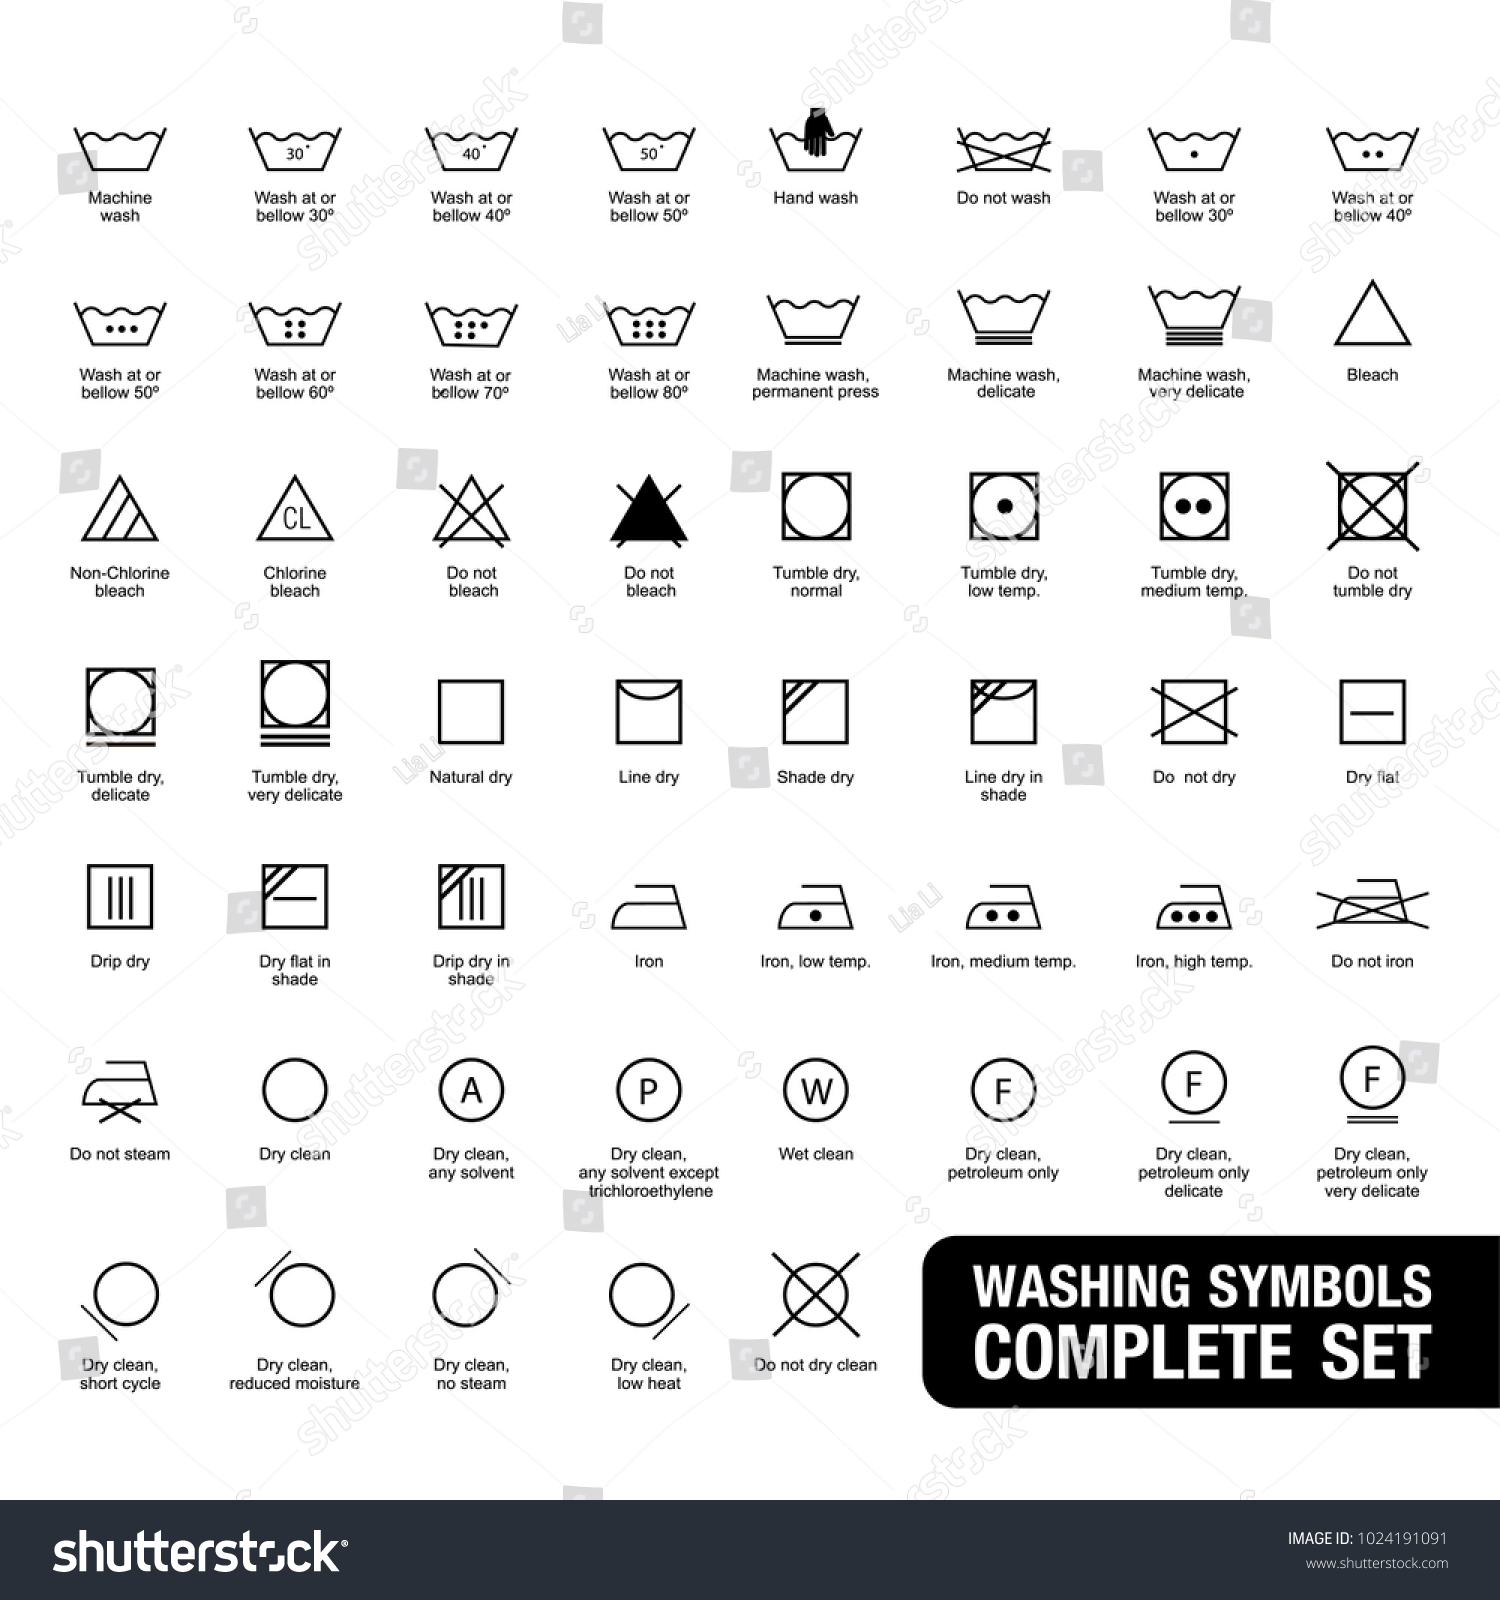 Complete set laundry symbols stock vector 1024191091 shutterstock complete set of laundry symbols biocorpaavc Choice Image